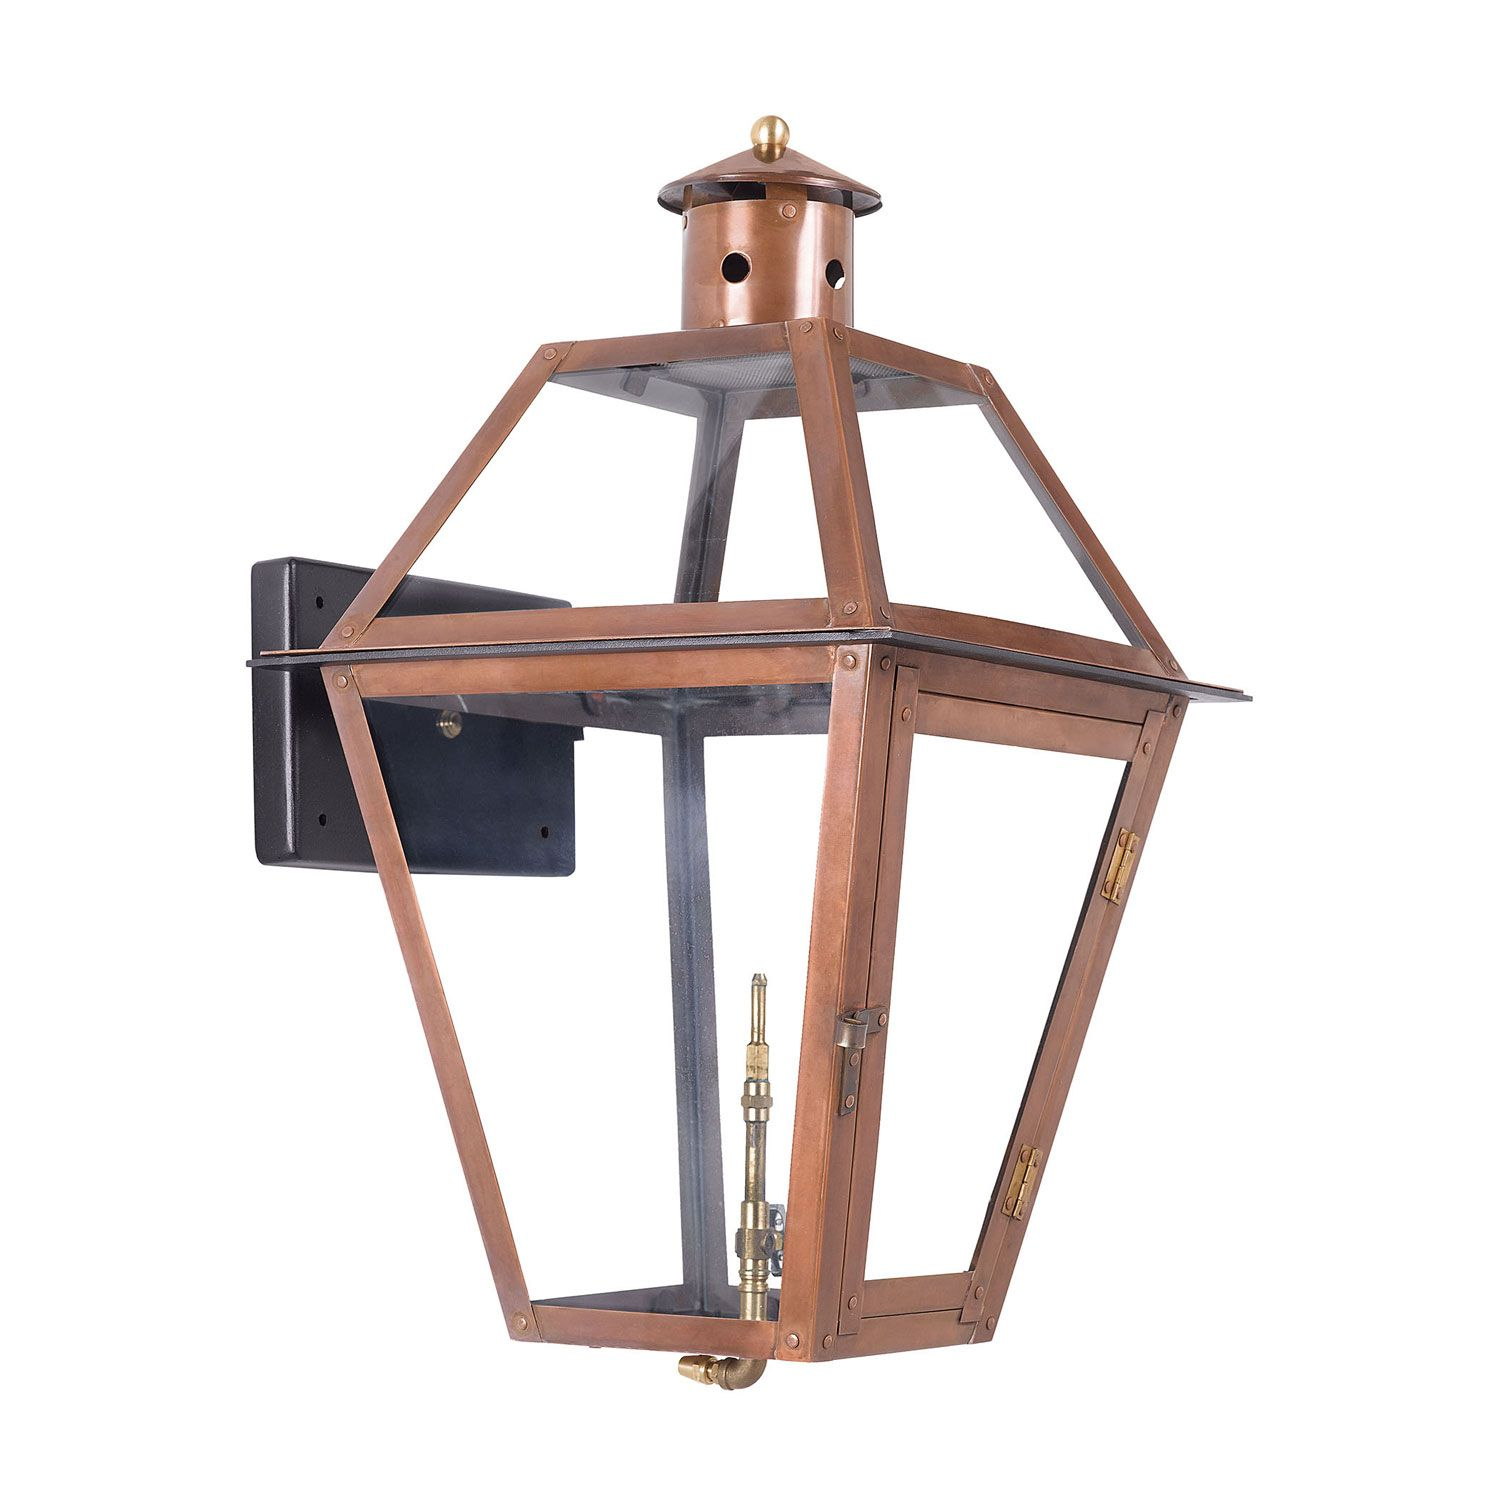 Elk lighting grande isle aged copper 24 inch outdoor wall sconce grande isle aged copper 24 inch outdoor wall sconce elk lighting wall mounted outdoor o amipublicfo Image collections